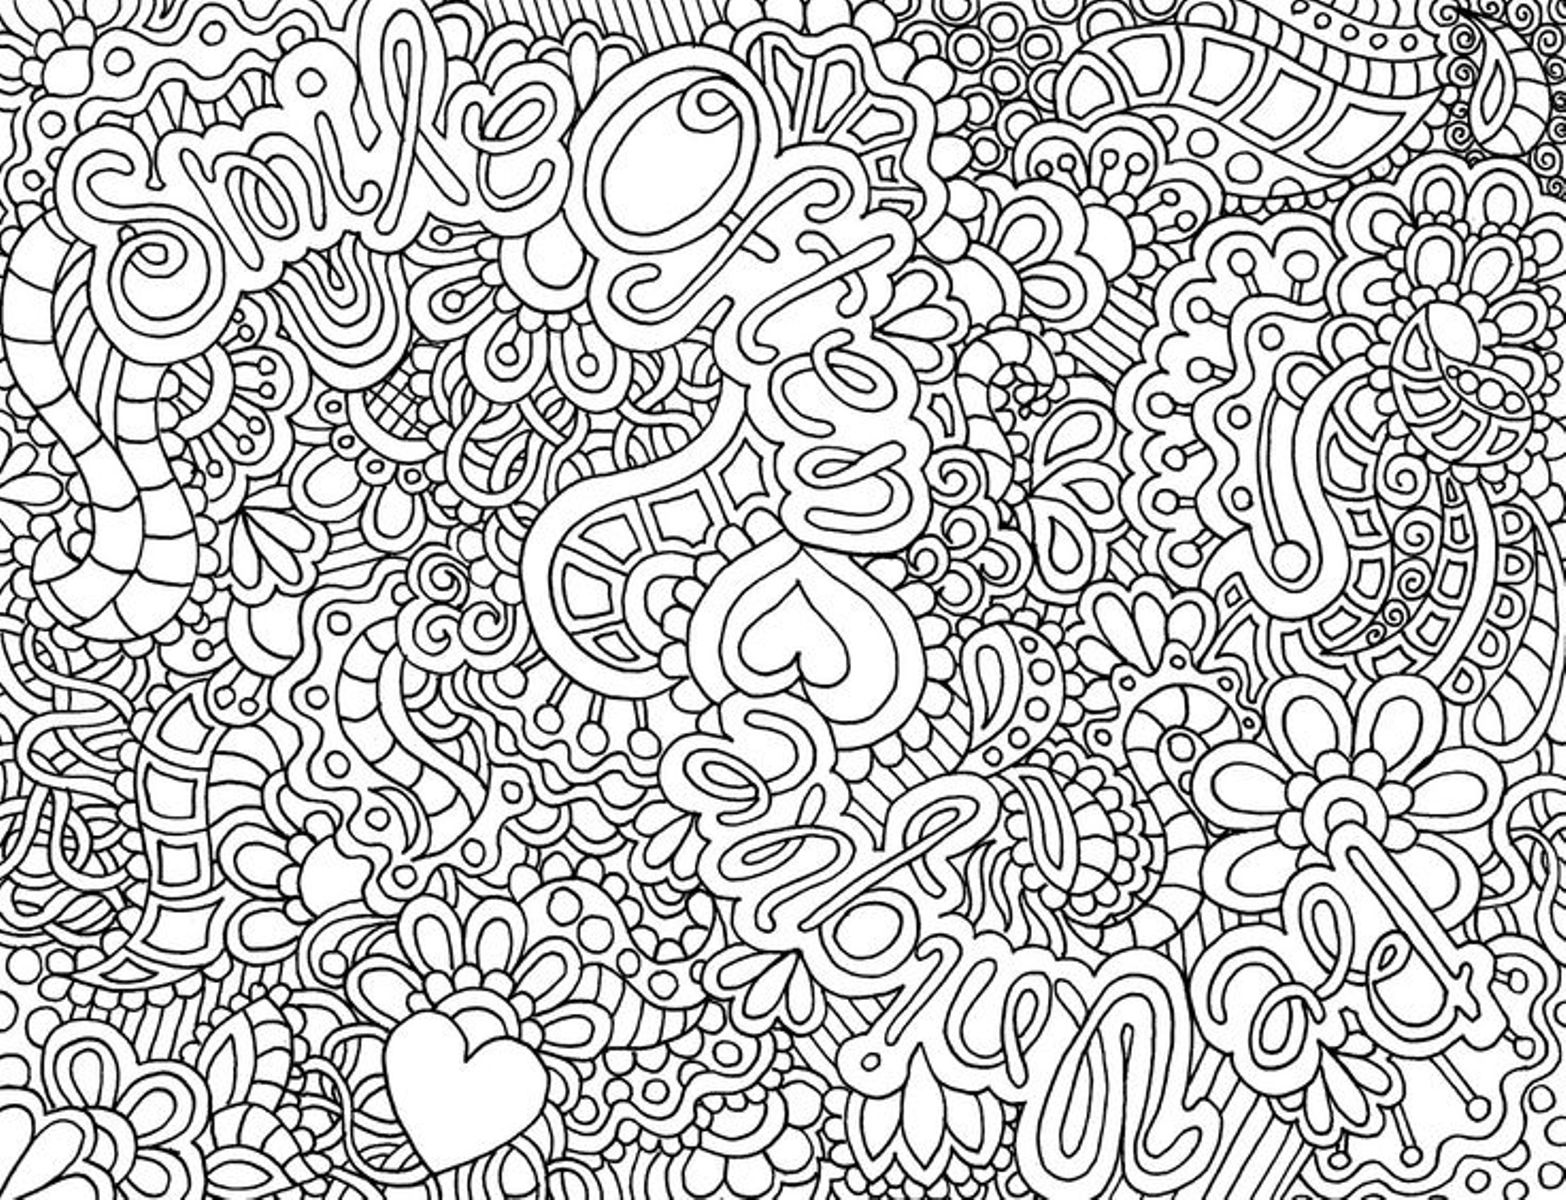 Colouring sheets hard - Detailed Coloring Pages